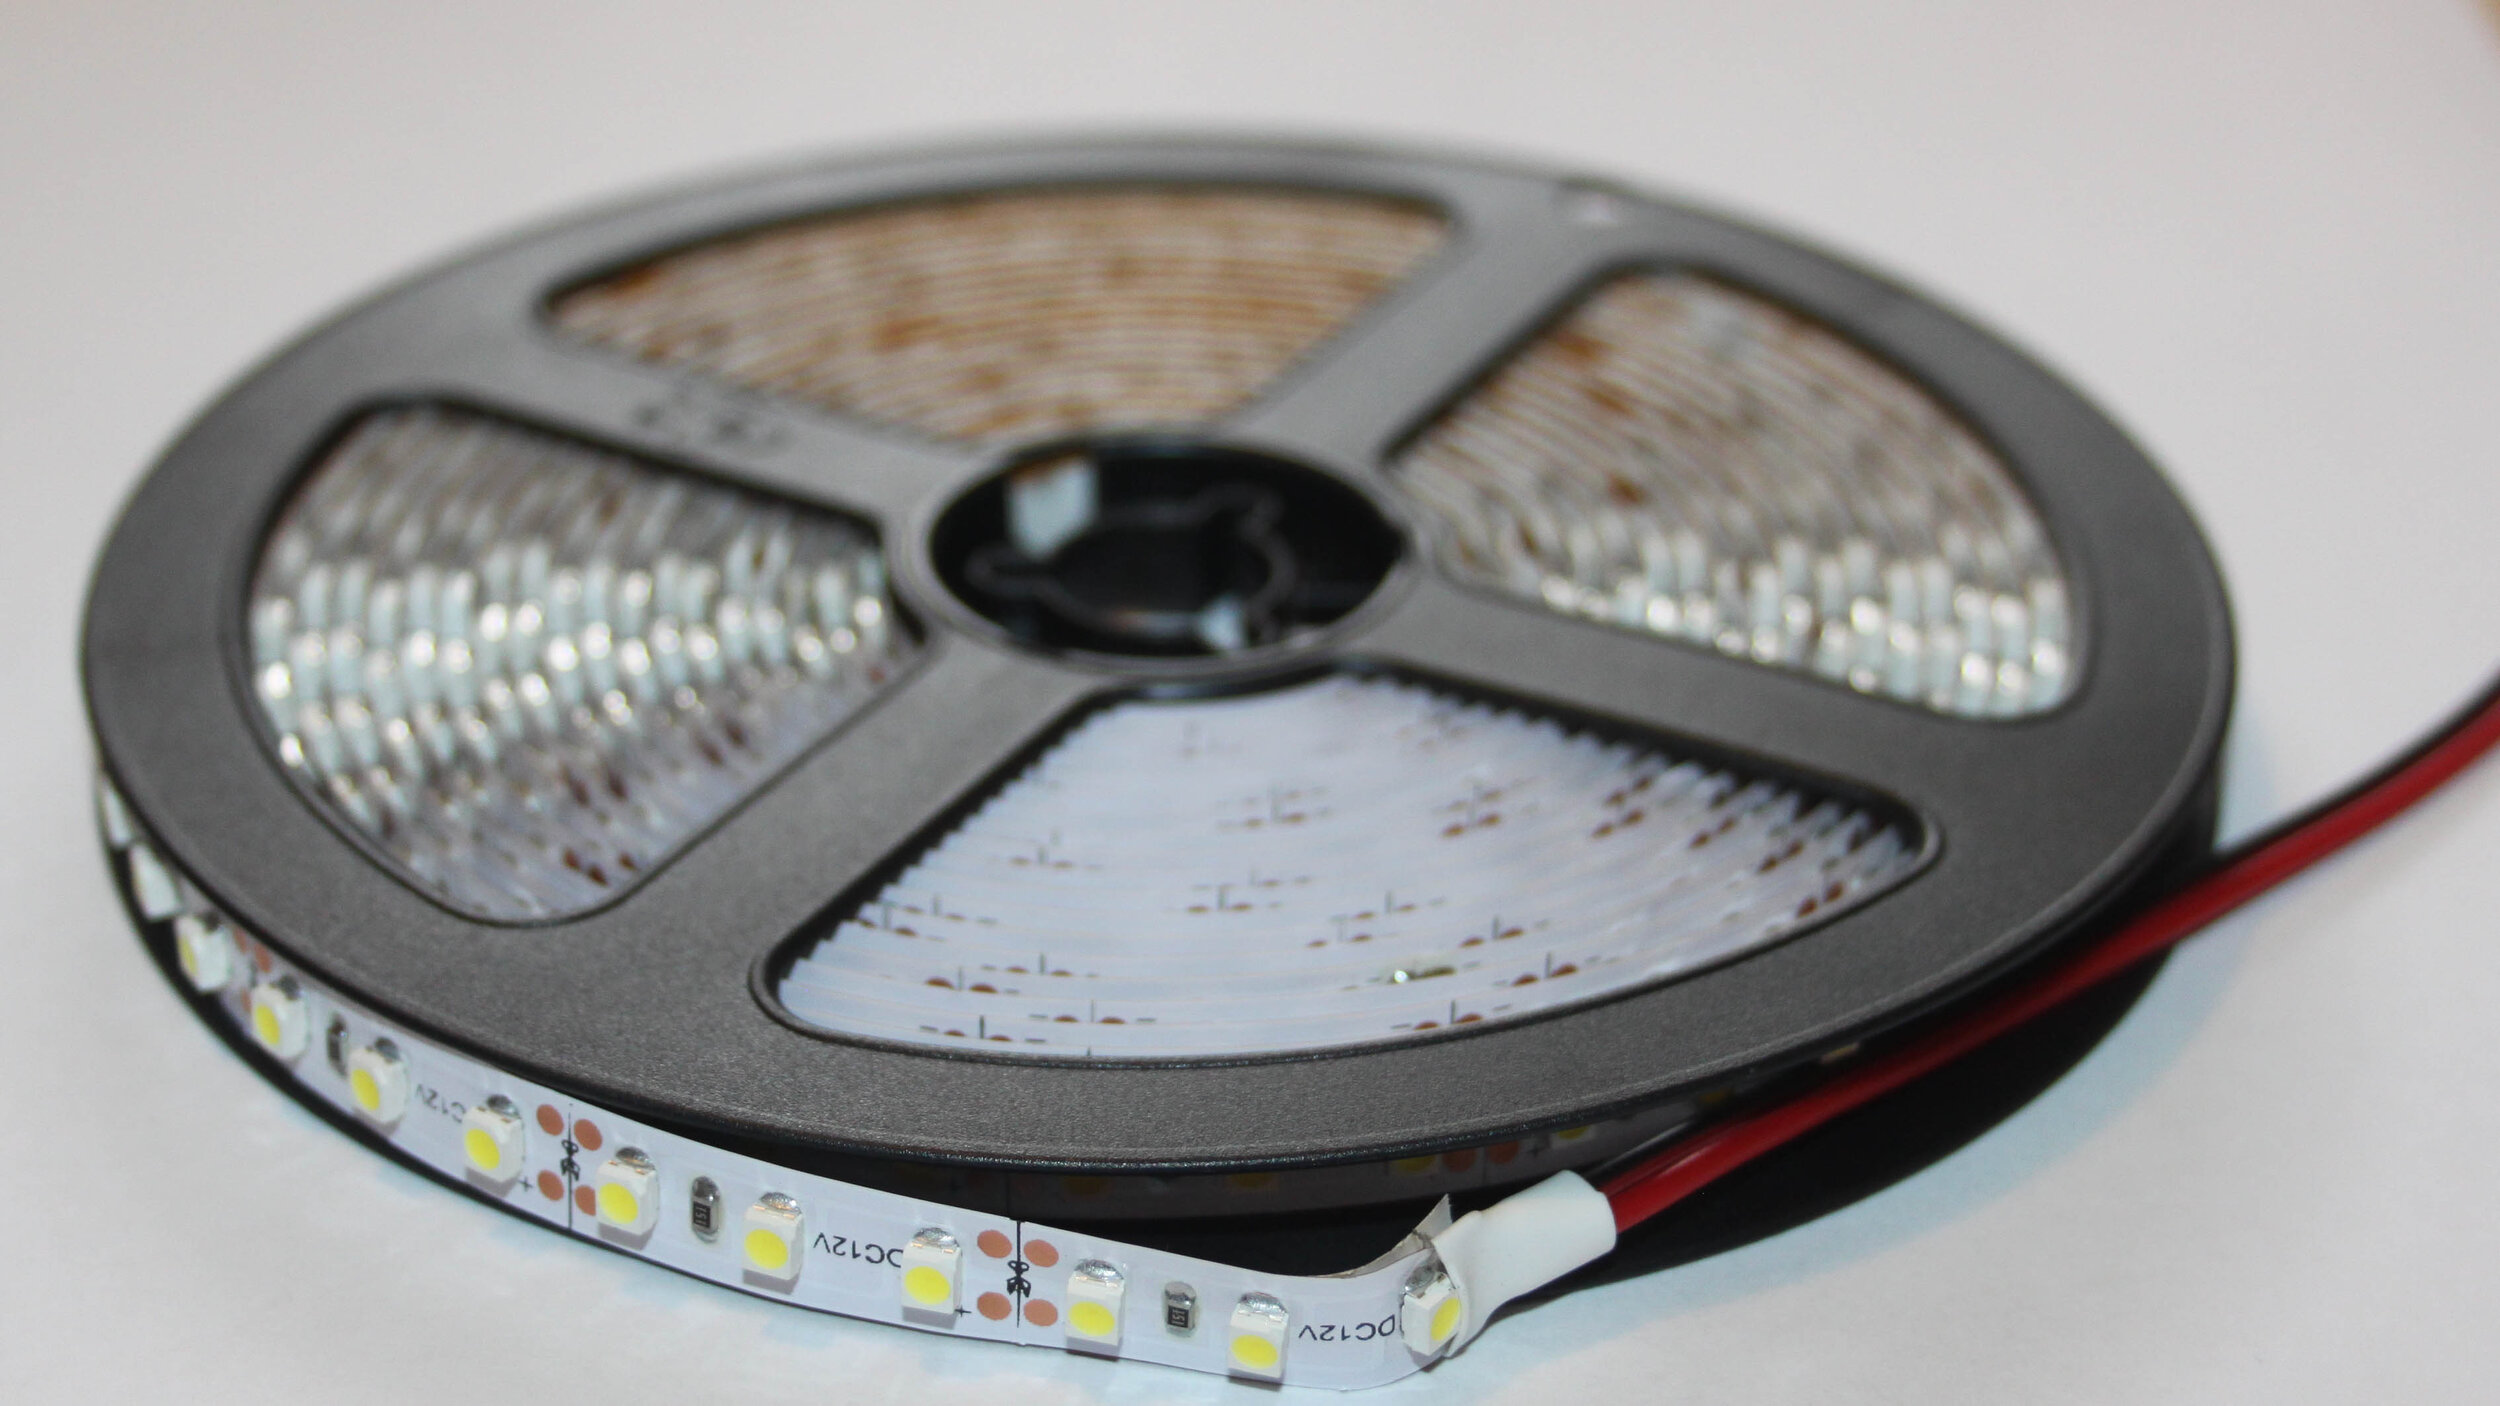 LED FLEXIBLE STRIP LIGHTING - Code: LEDSTRWarm white indoor LEDs; 120 LEDs per metrePeel and stick backing. Can be cut every 25mm (3 LEDs).Price: $5.67 (1 metre); $23.18 (5 metre roll)